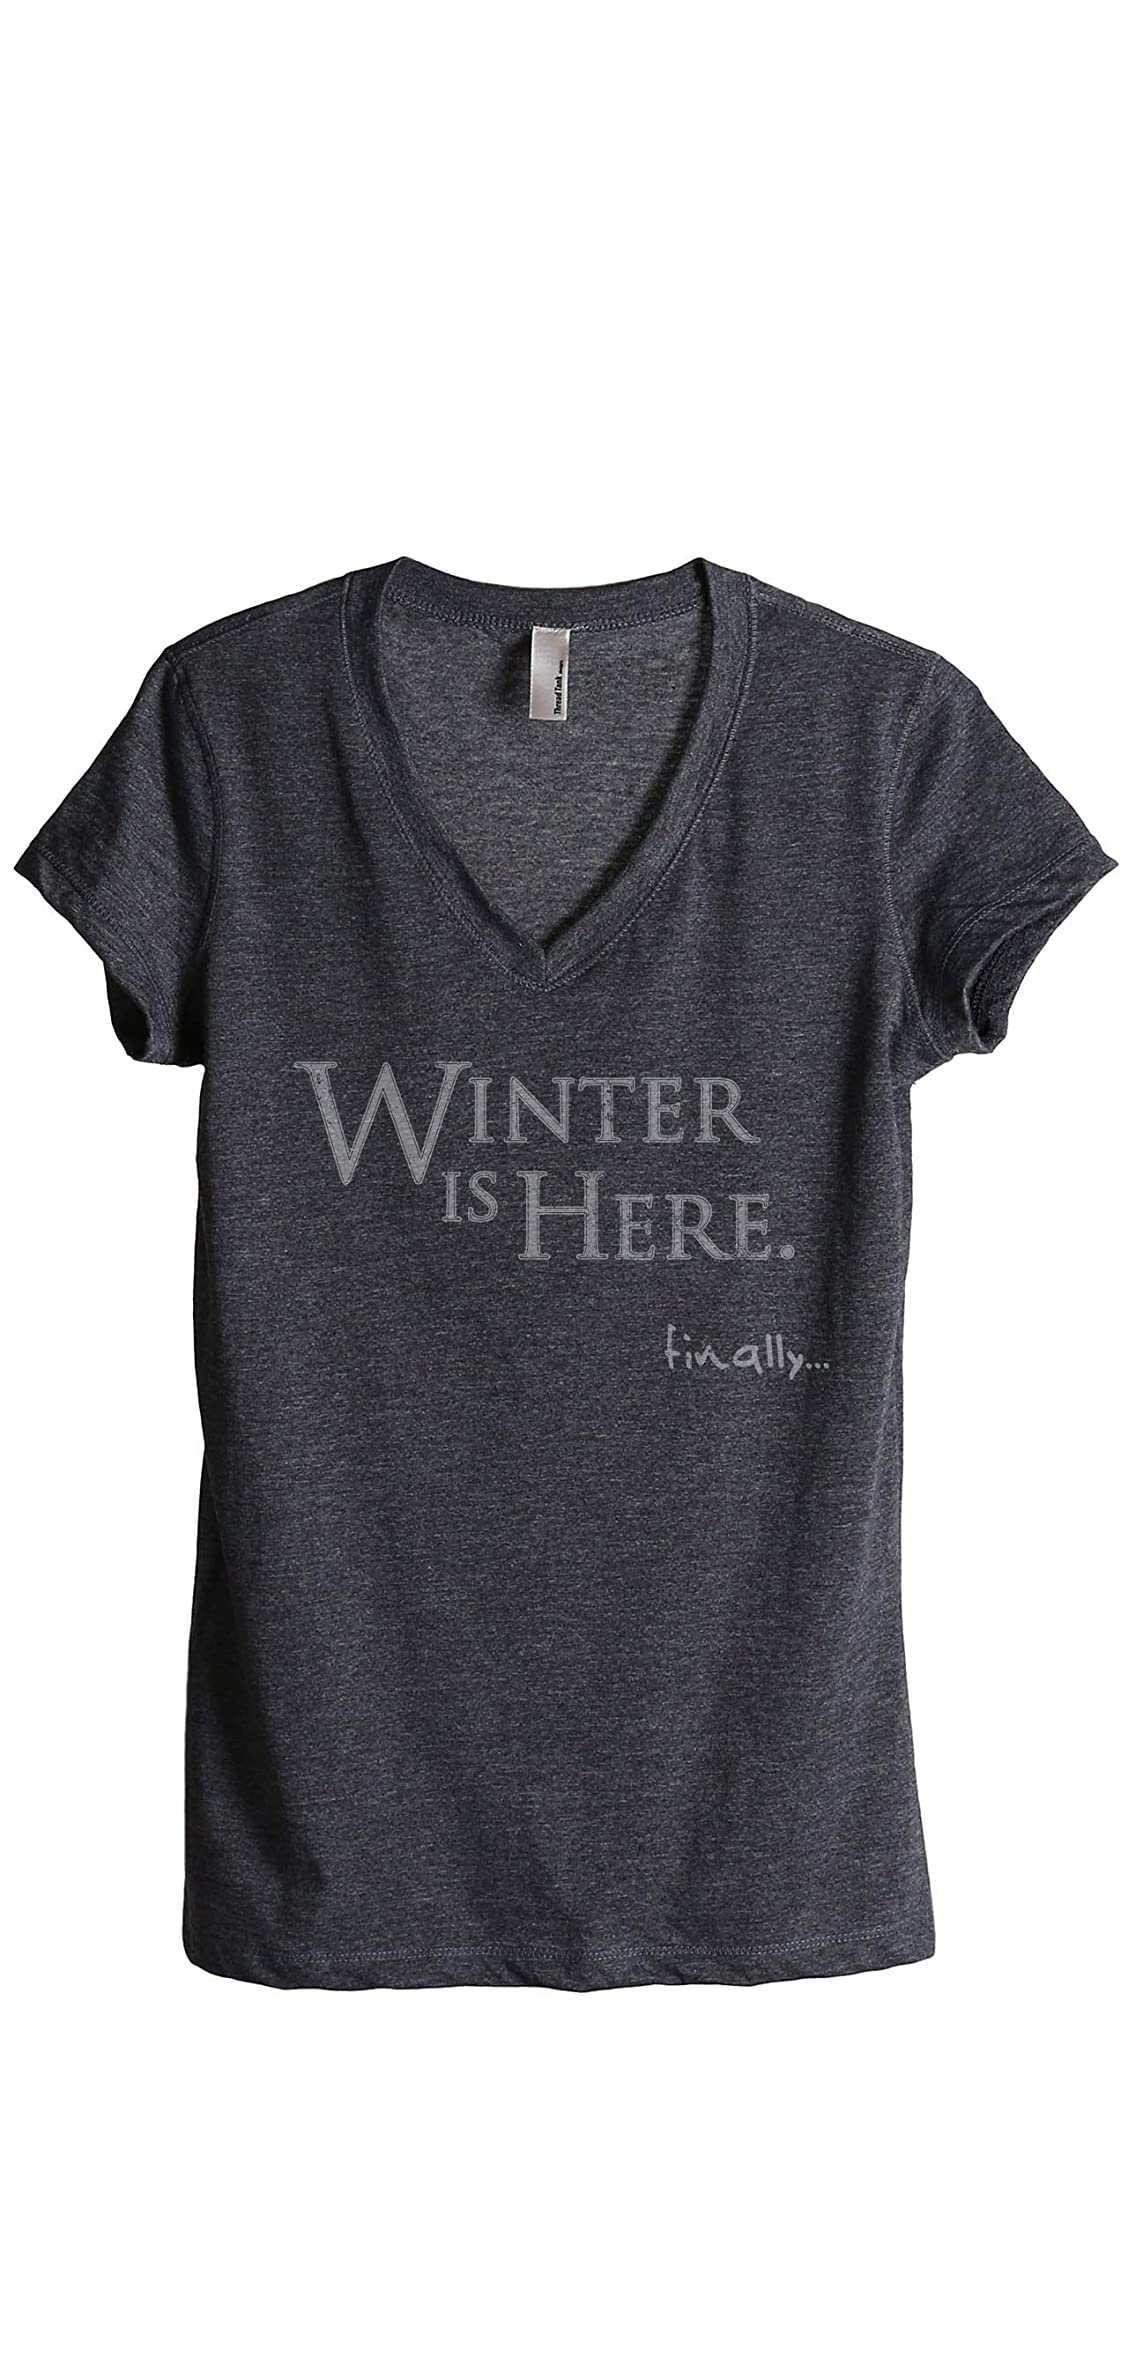 Winter Is Here Finally Women's Fashion Relaxed Tee